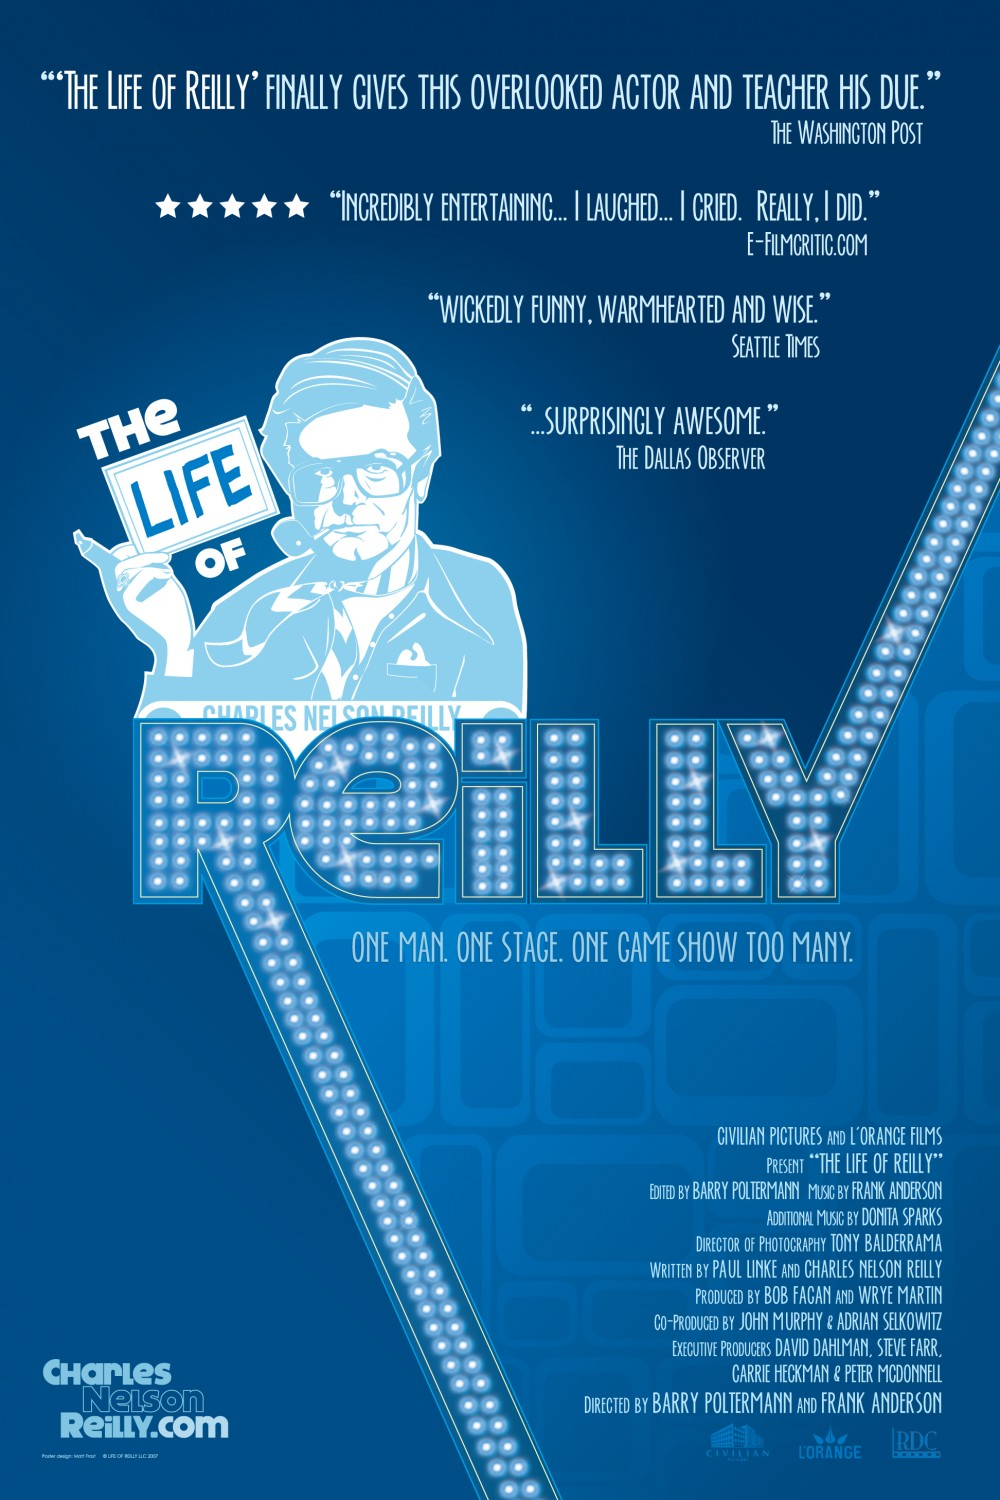 Extra Large Movie Poster Image for The Life of Reilly